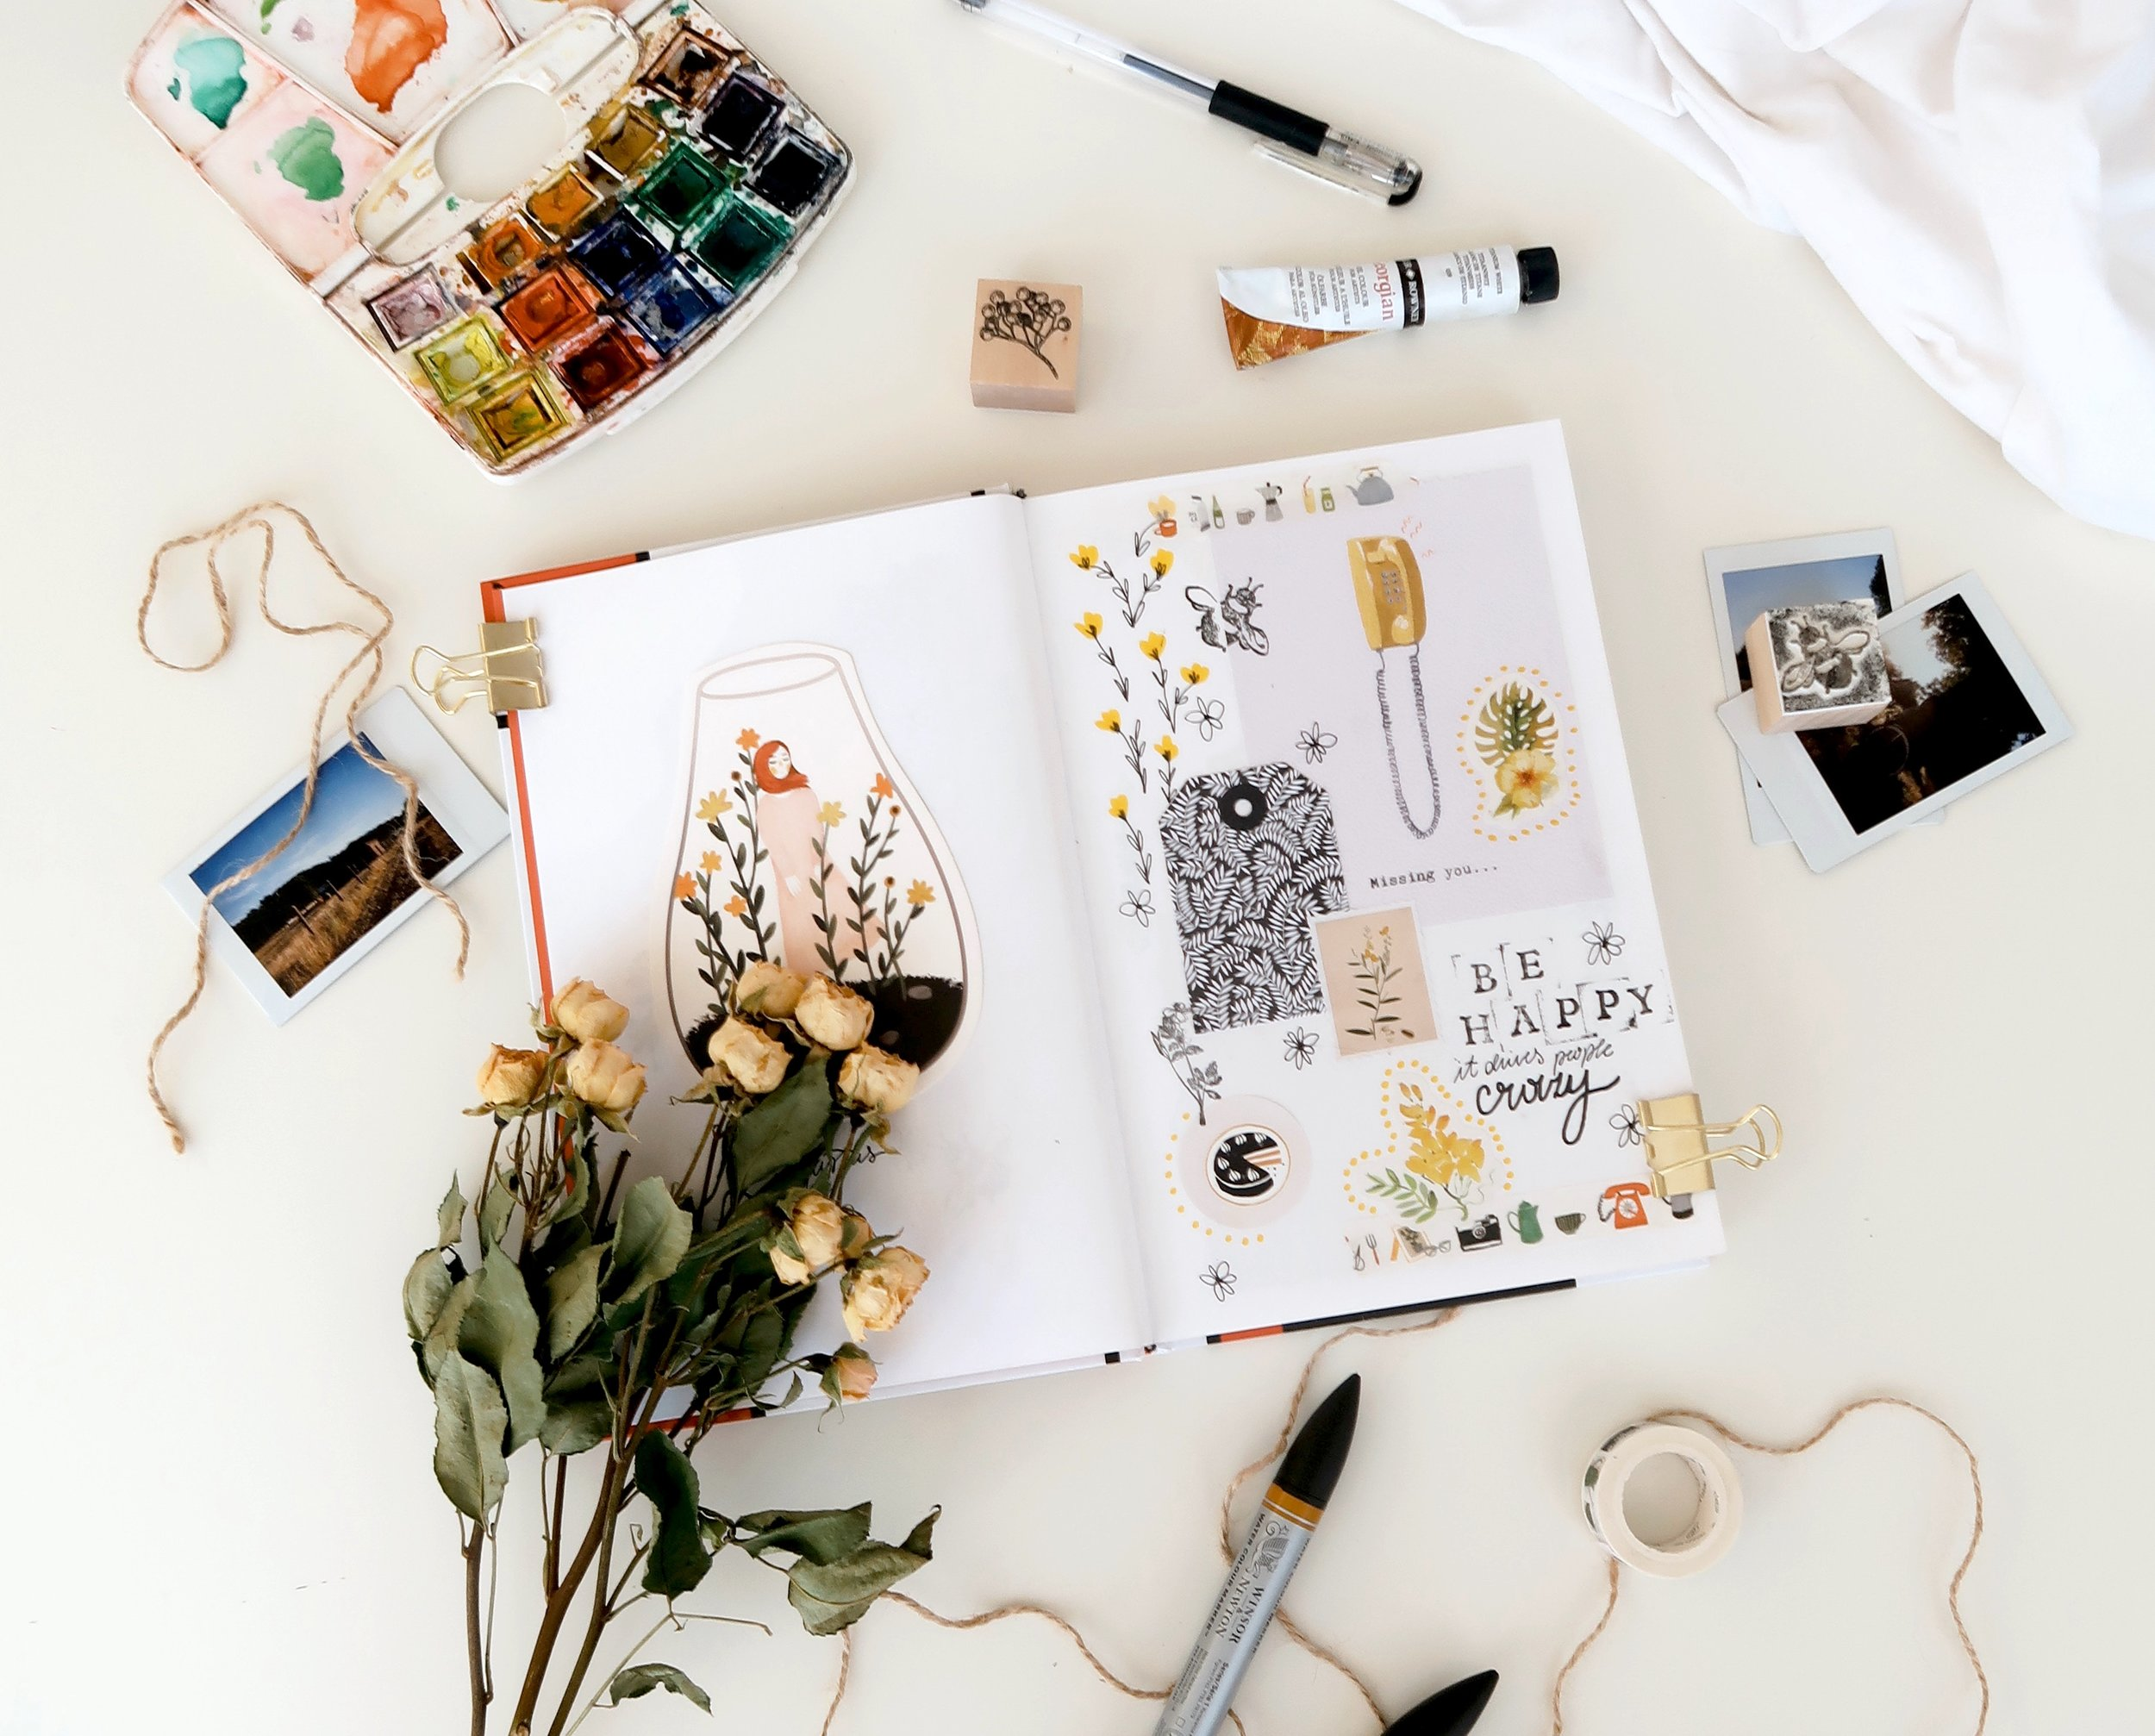 Photo by    Estée Janssens    on    Unsplash   .   This post contains some affiliate links, which means if you purchase any items from one of my links, I may receive a small commission, but it will not cost you any extra. Why not make a couple bucks off products I have used, heartily approve of, and would recommend to you either way? (See my full disclosure    here   ).